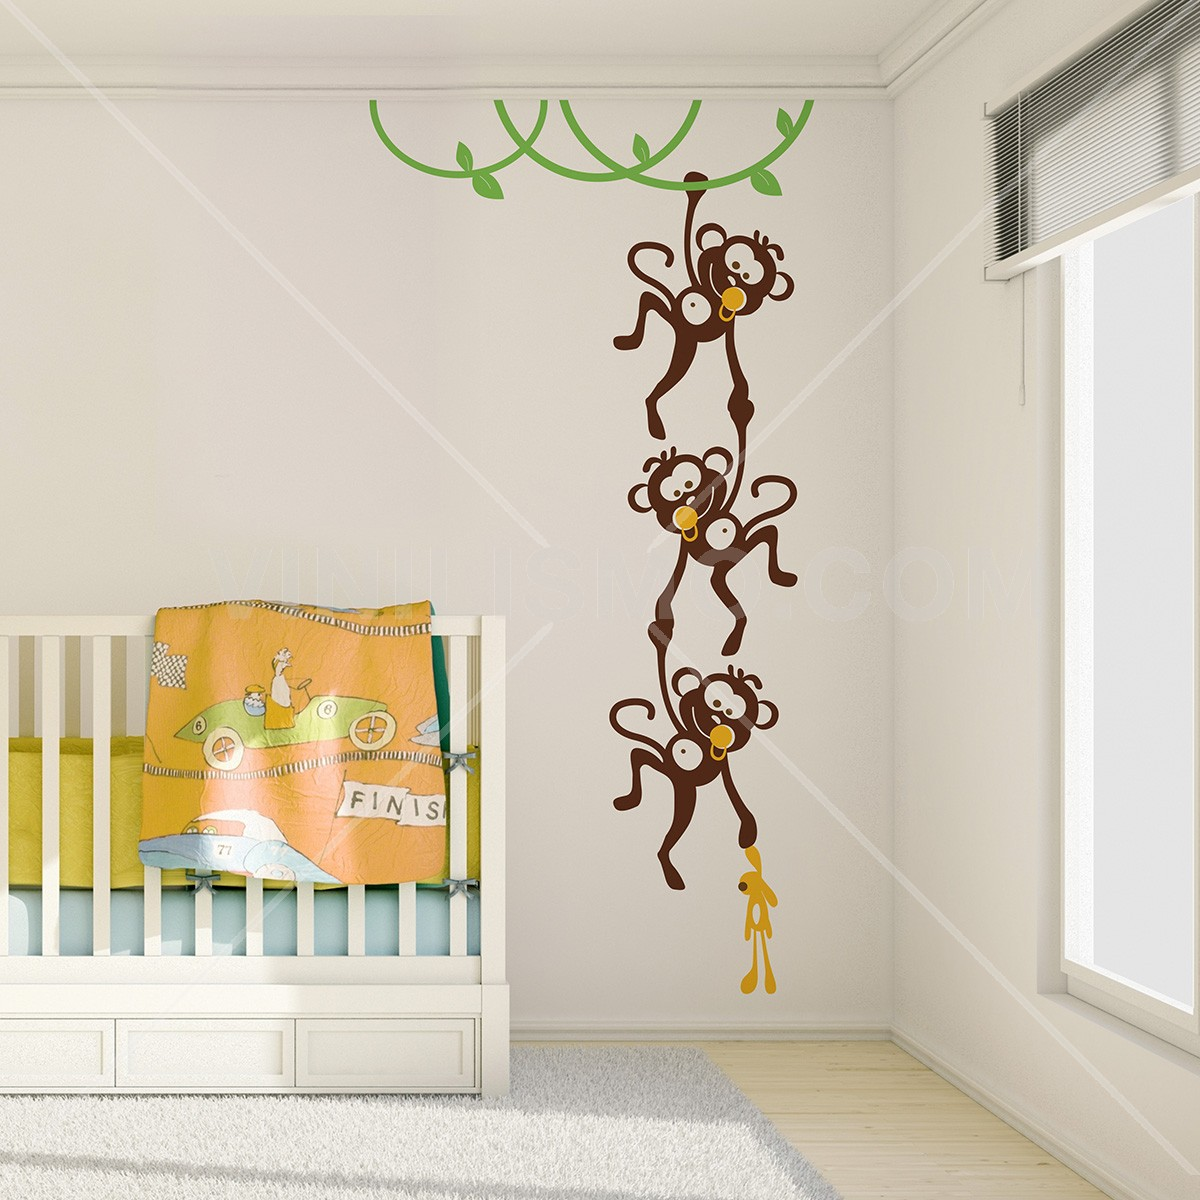 Changuitos Para Dibujar wall decal: changuitos jugando